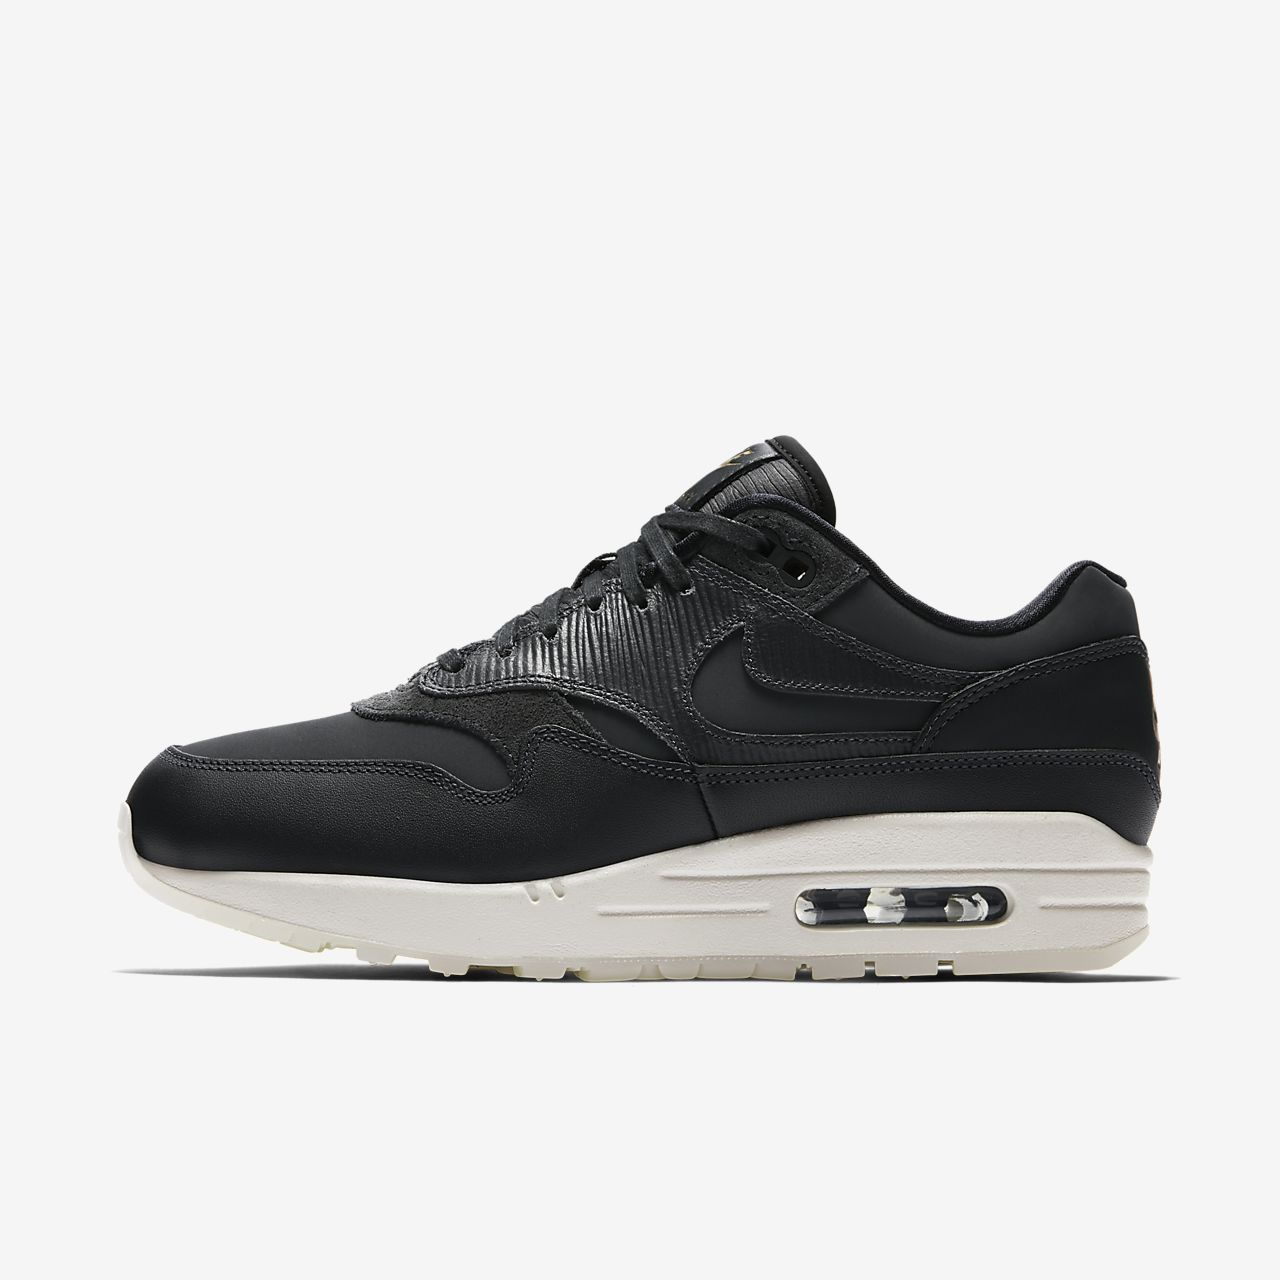 air max 1 premium anthracite nz